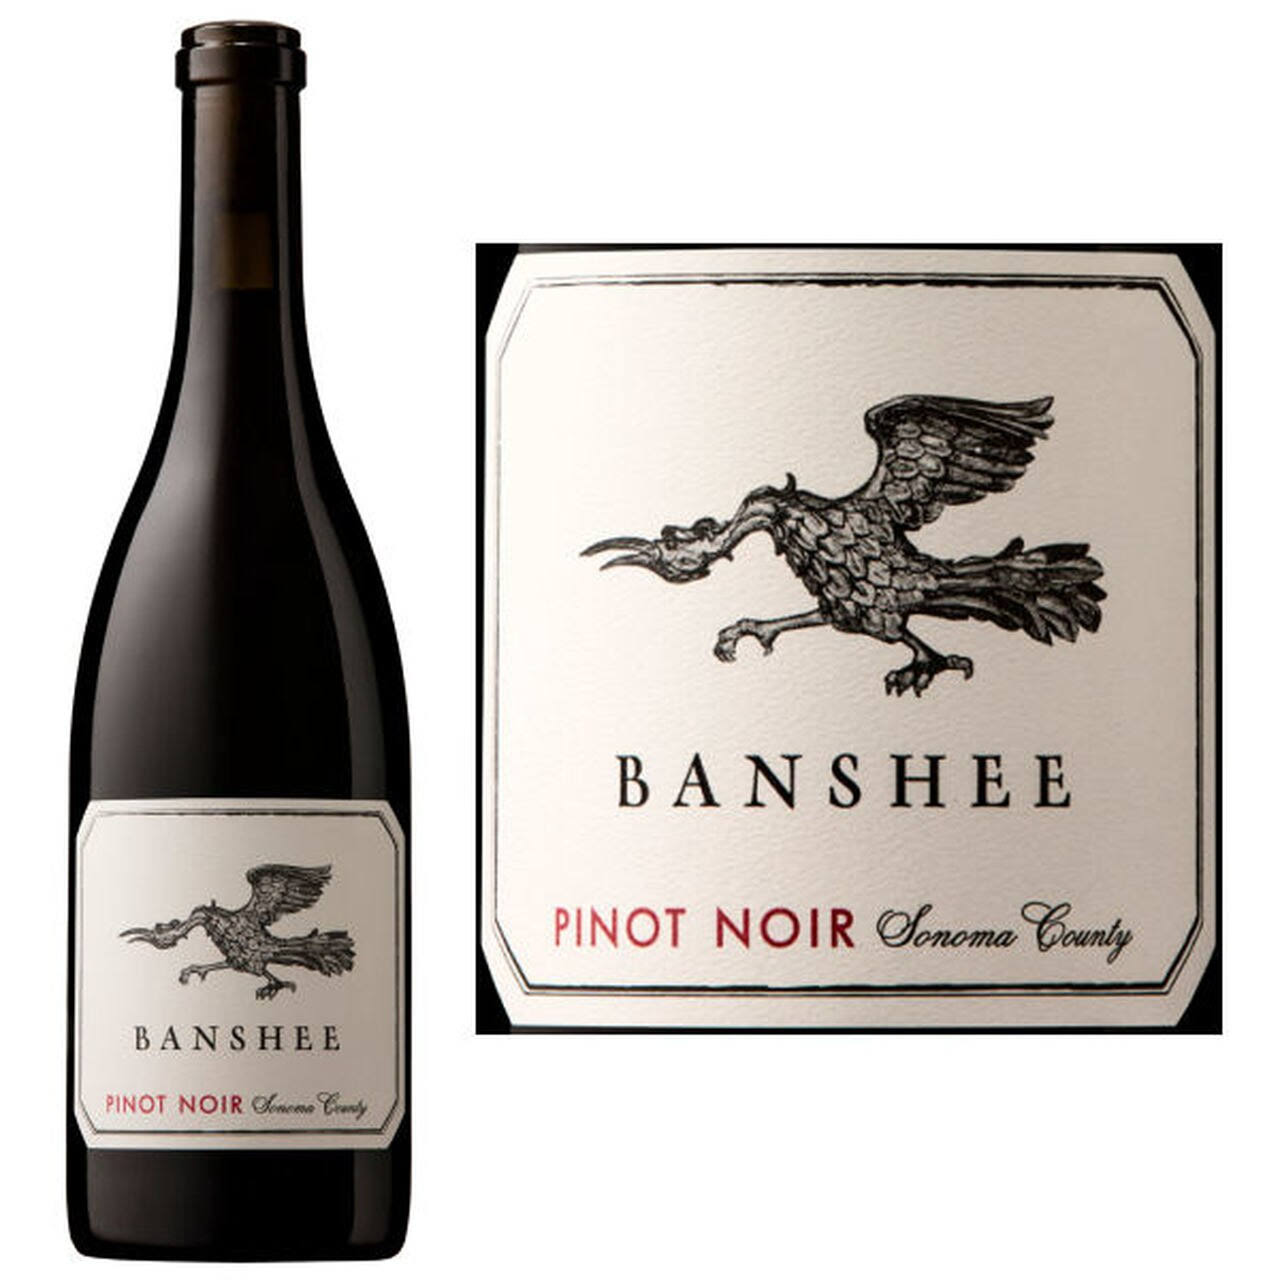 Banshee Pinot Noir, Sonoma County (Vintage Varies) - 750 ml bottle